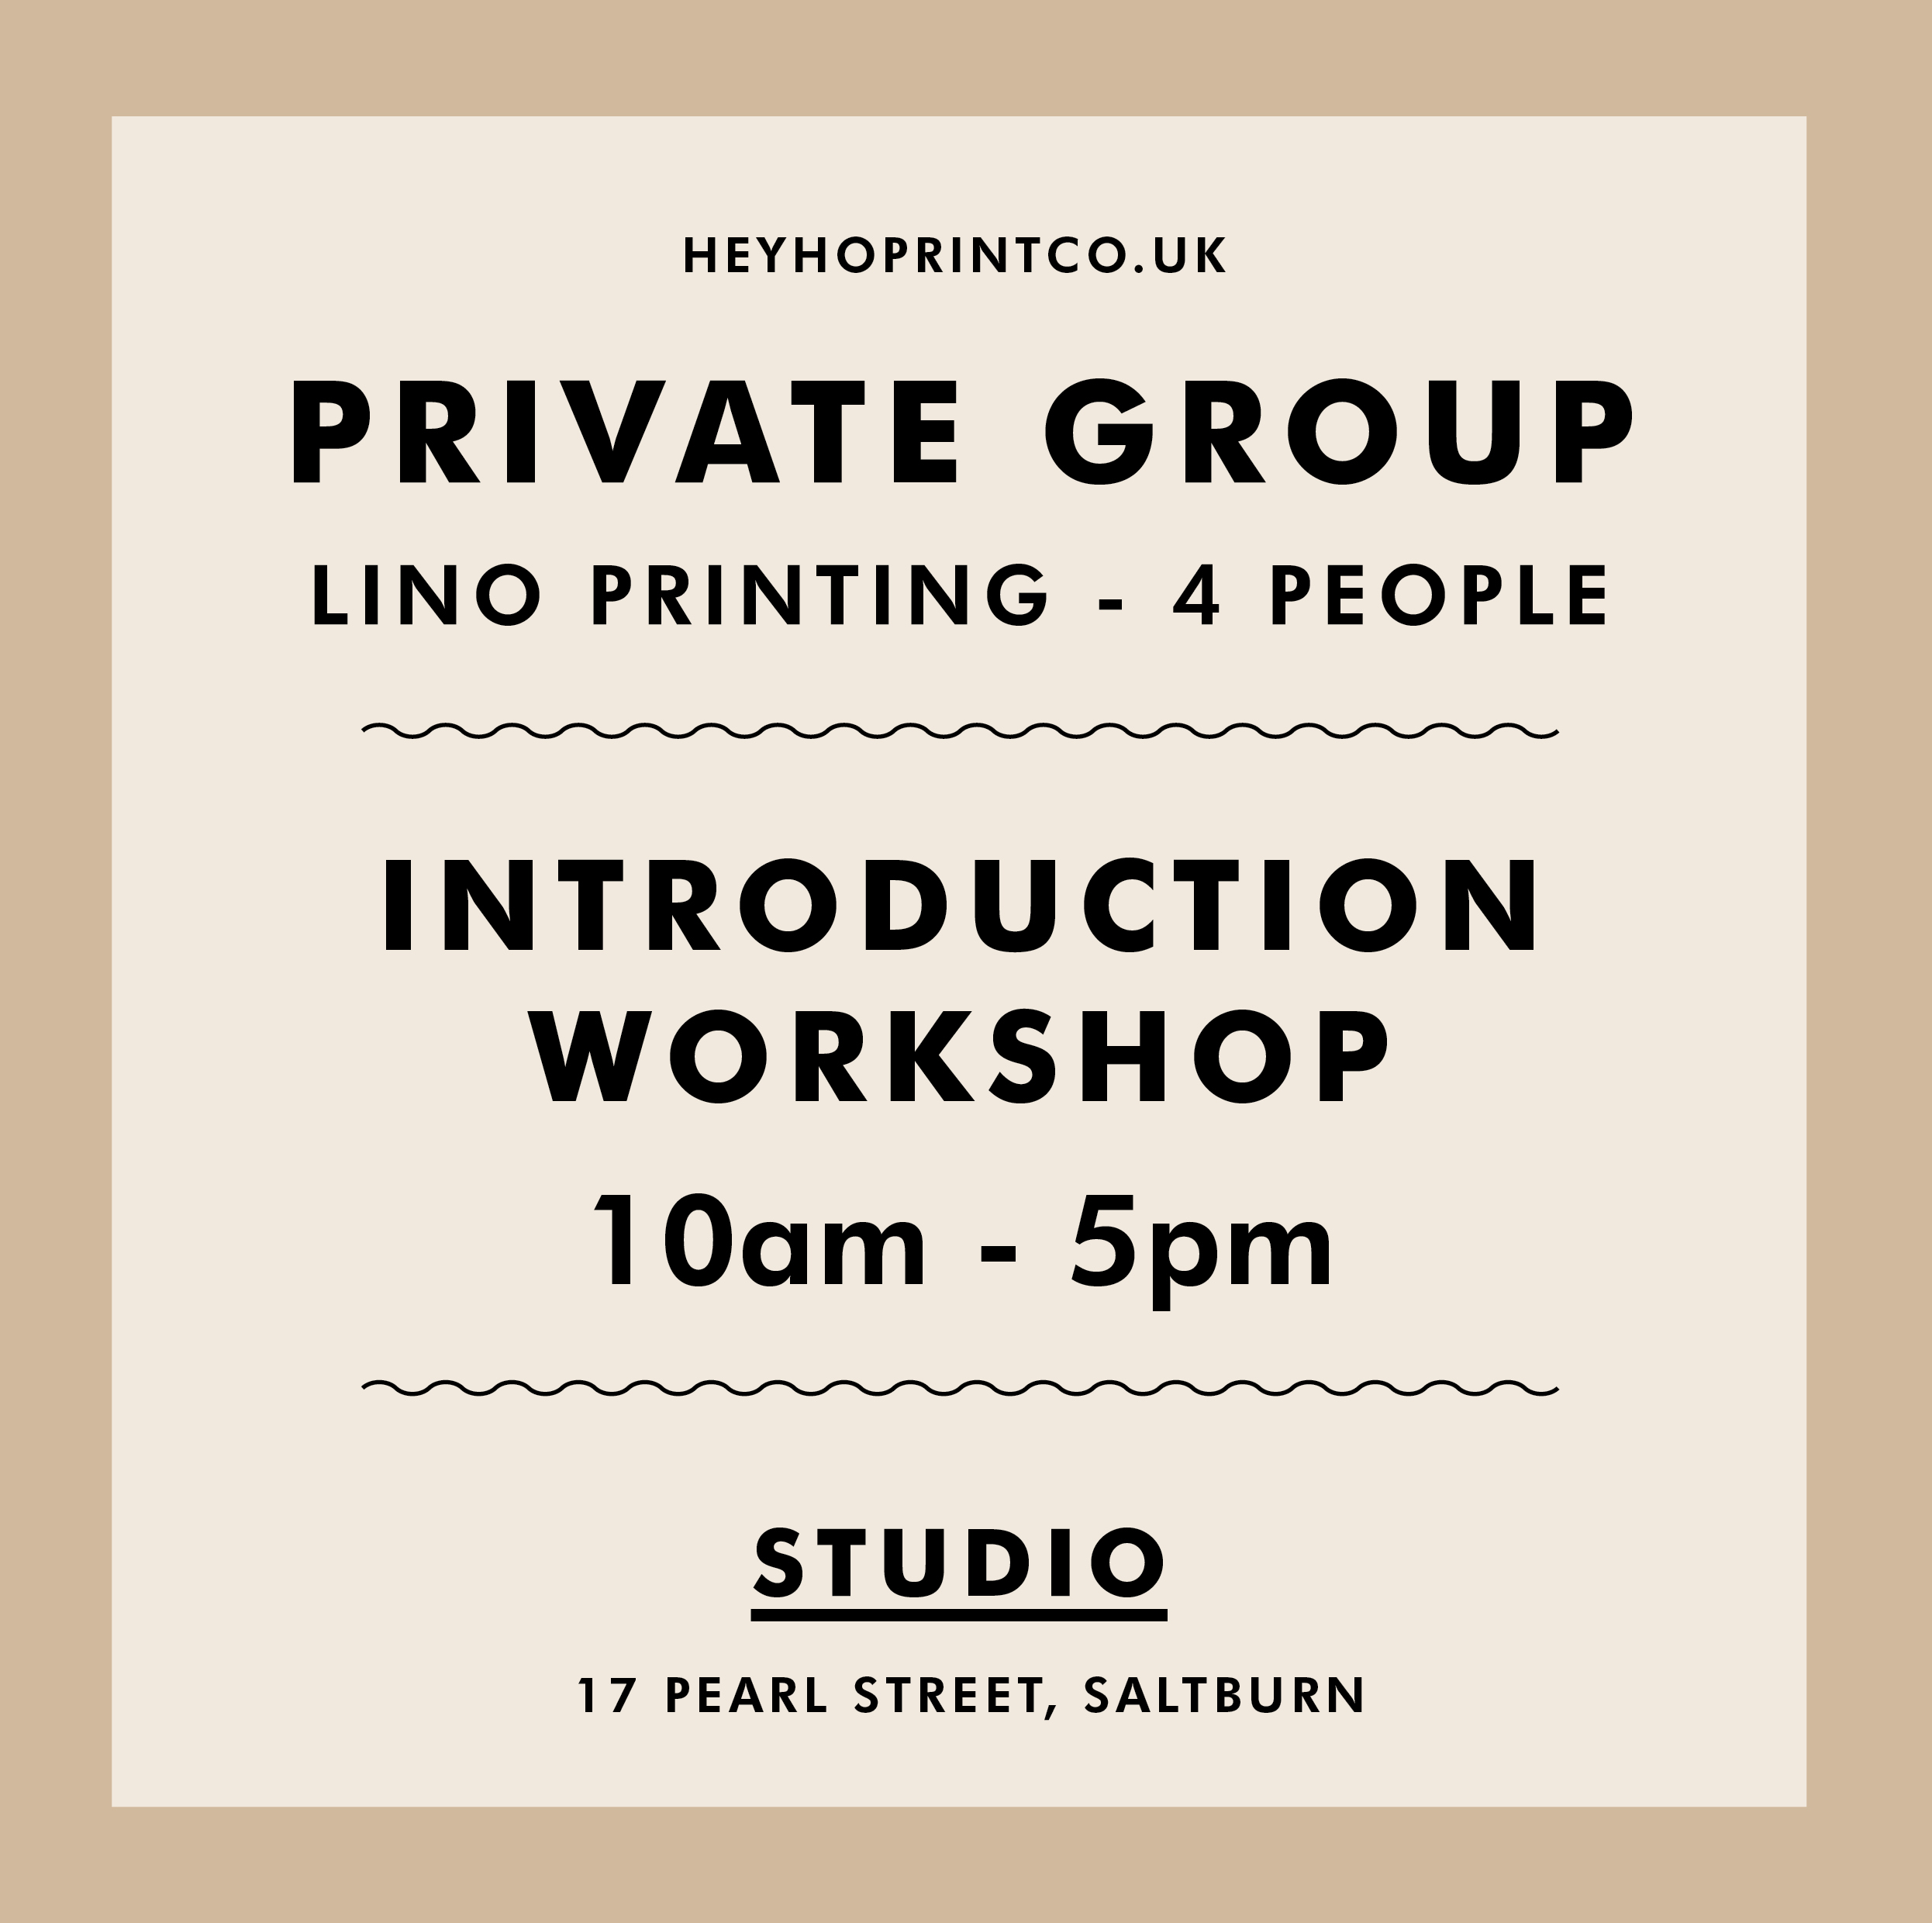 Private Group Lino Printing Workshop